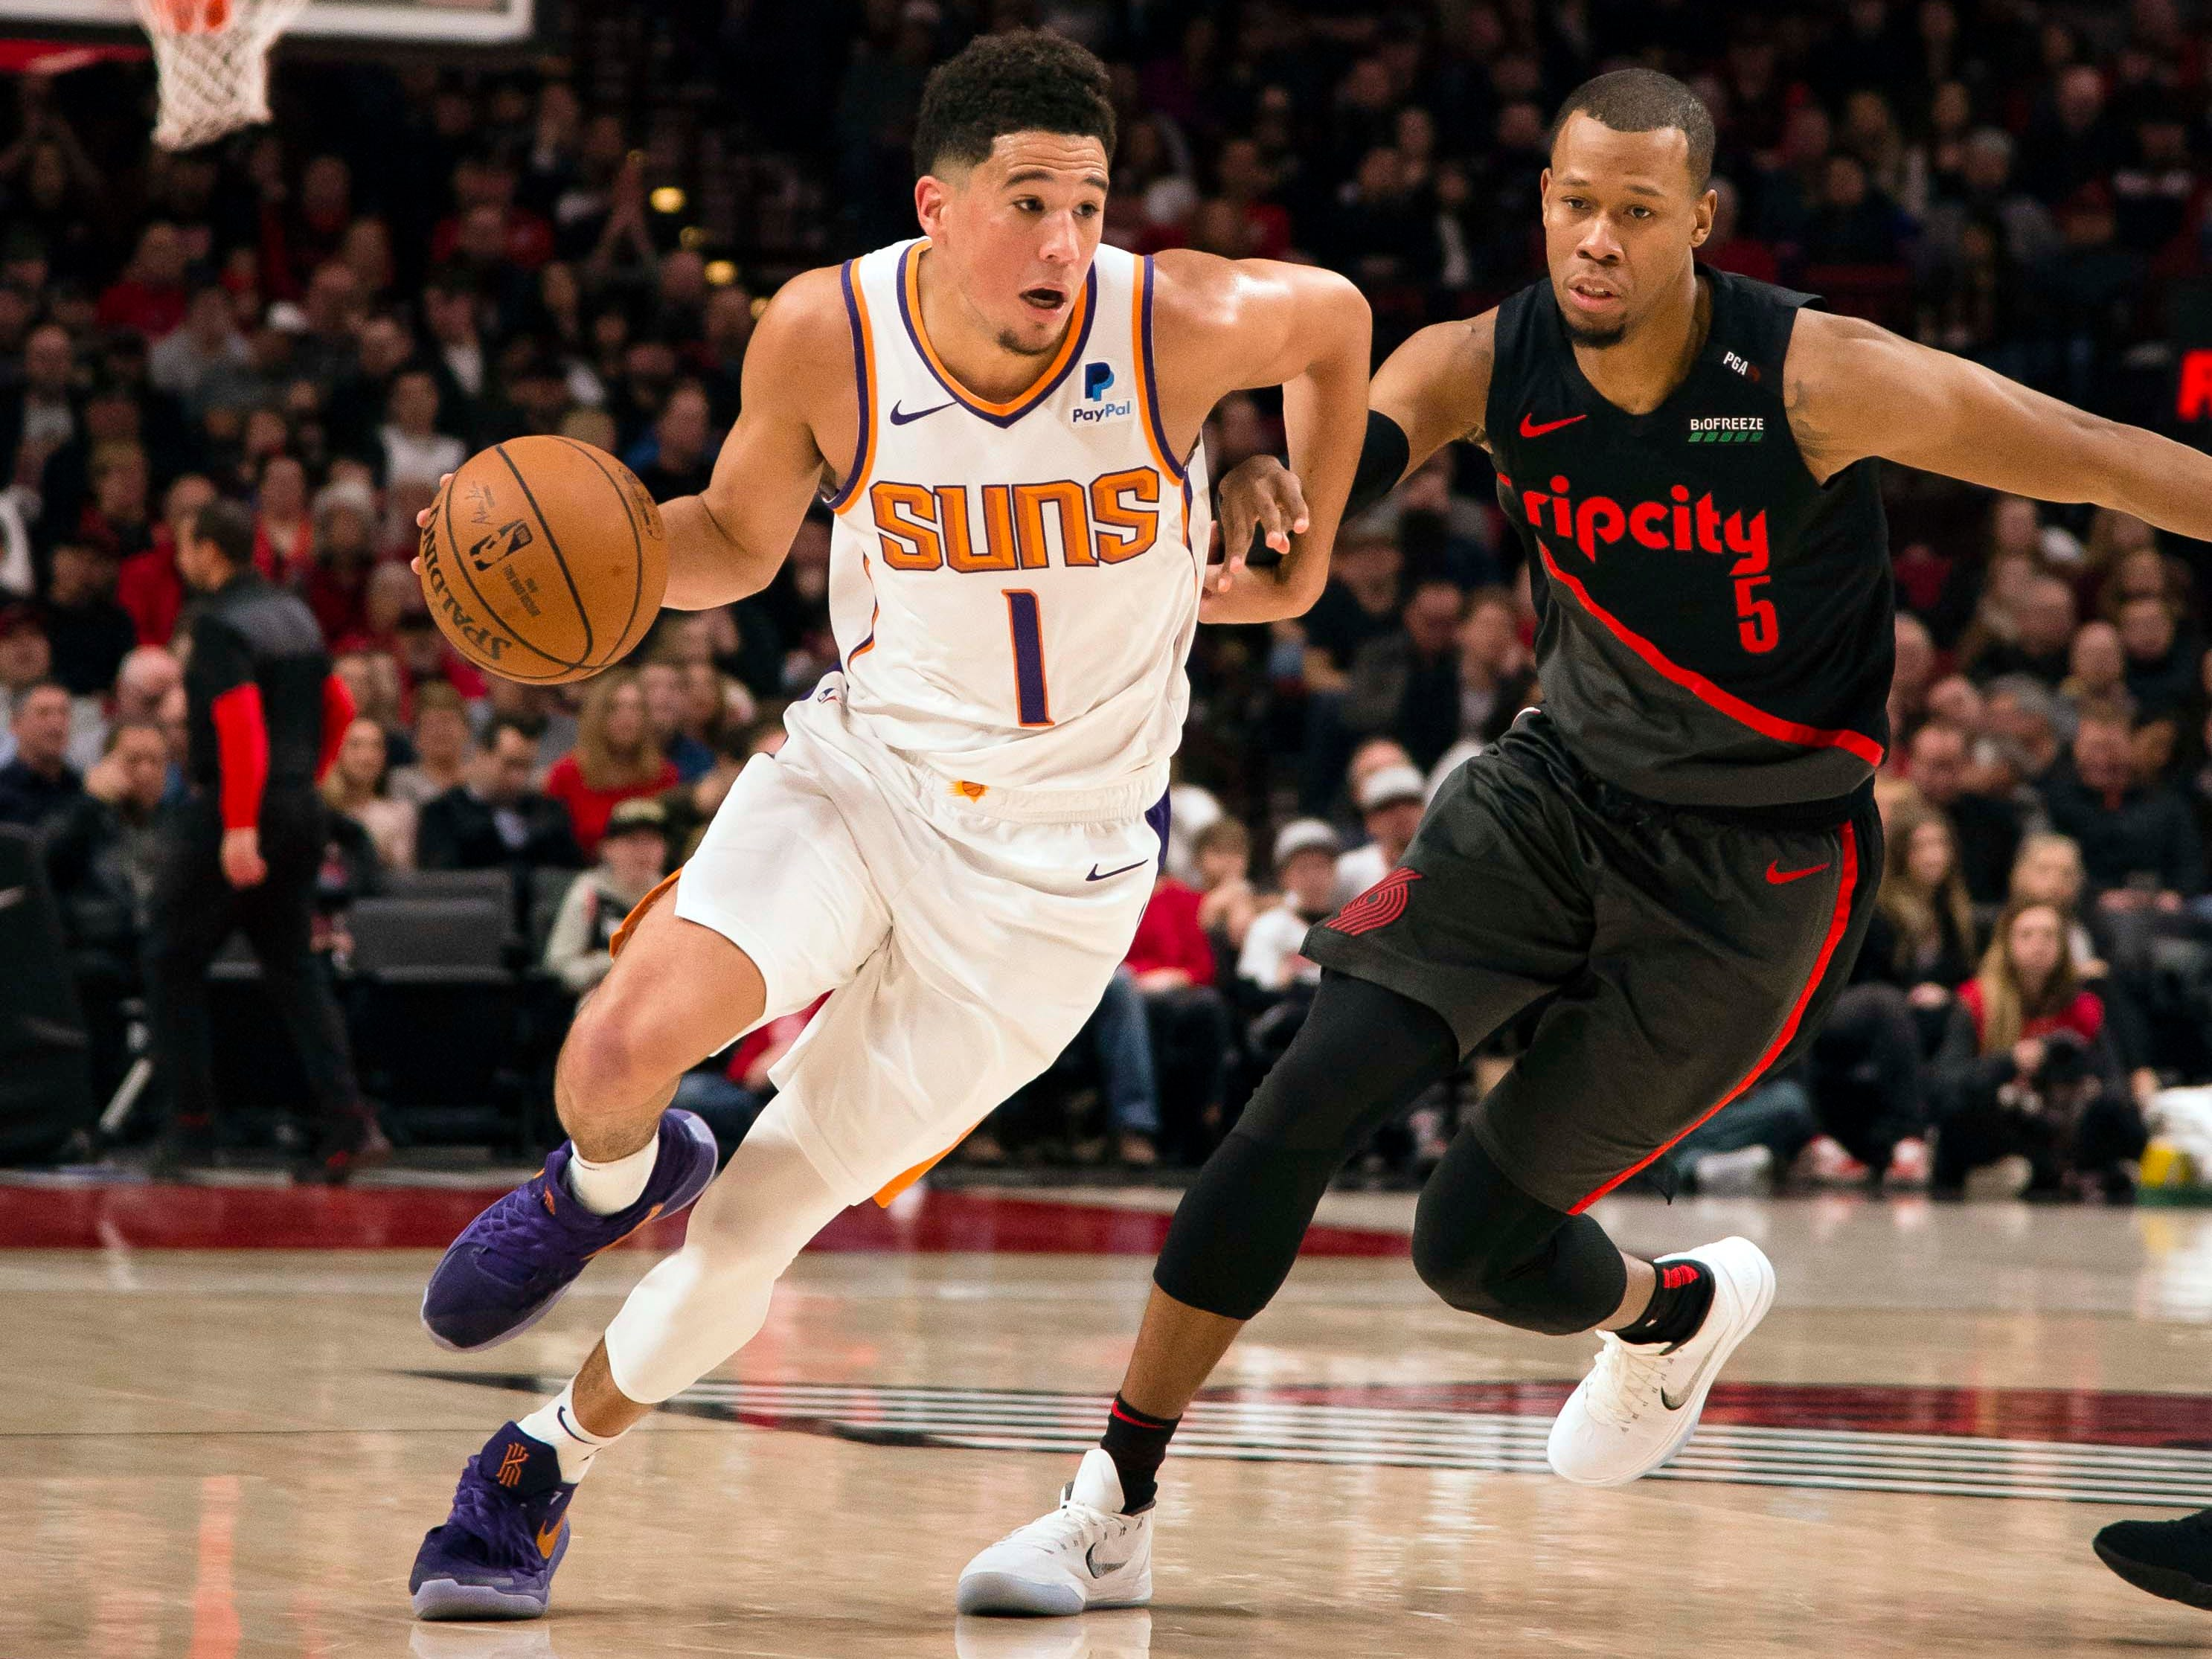 Mar 9, 2019; Portland, OR, USA; Phoenix Suns guard Devin Booker (1) drives past Portland Trail Blazers guard Rodney Hood (5) during the first half at Moda Center.